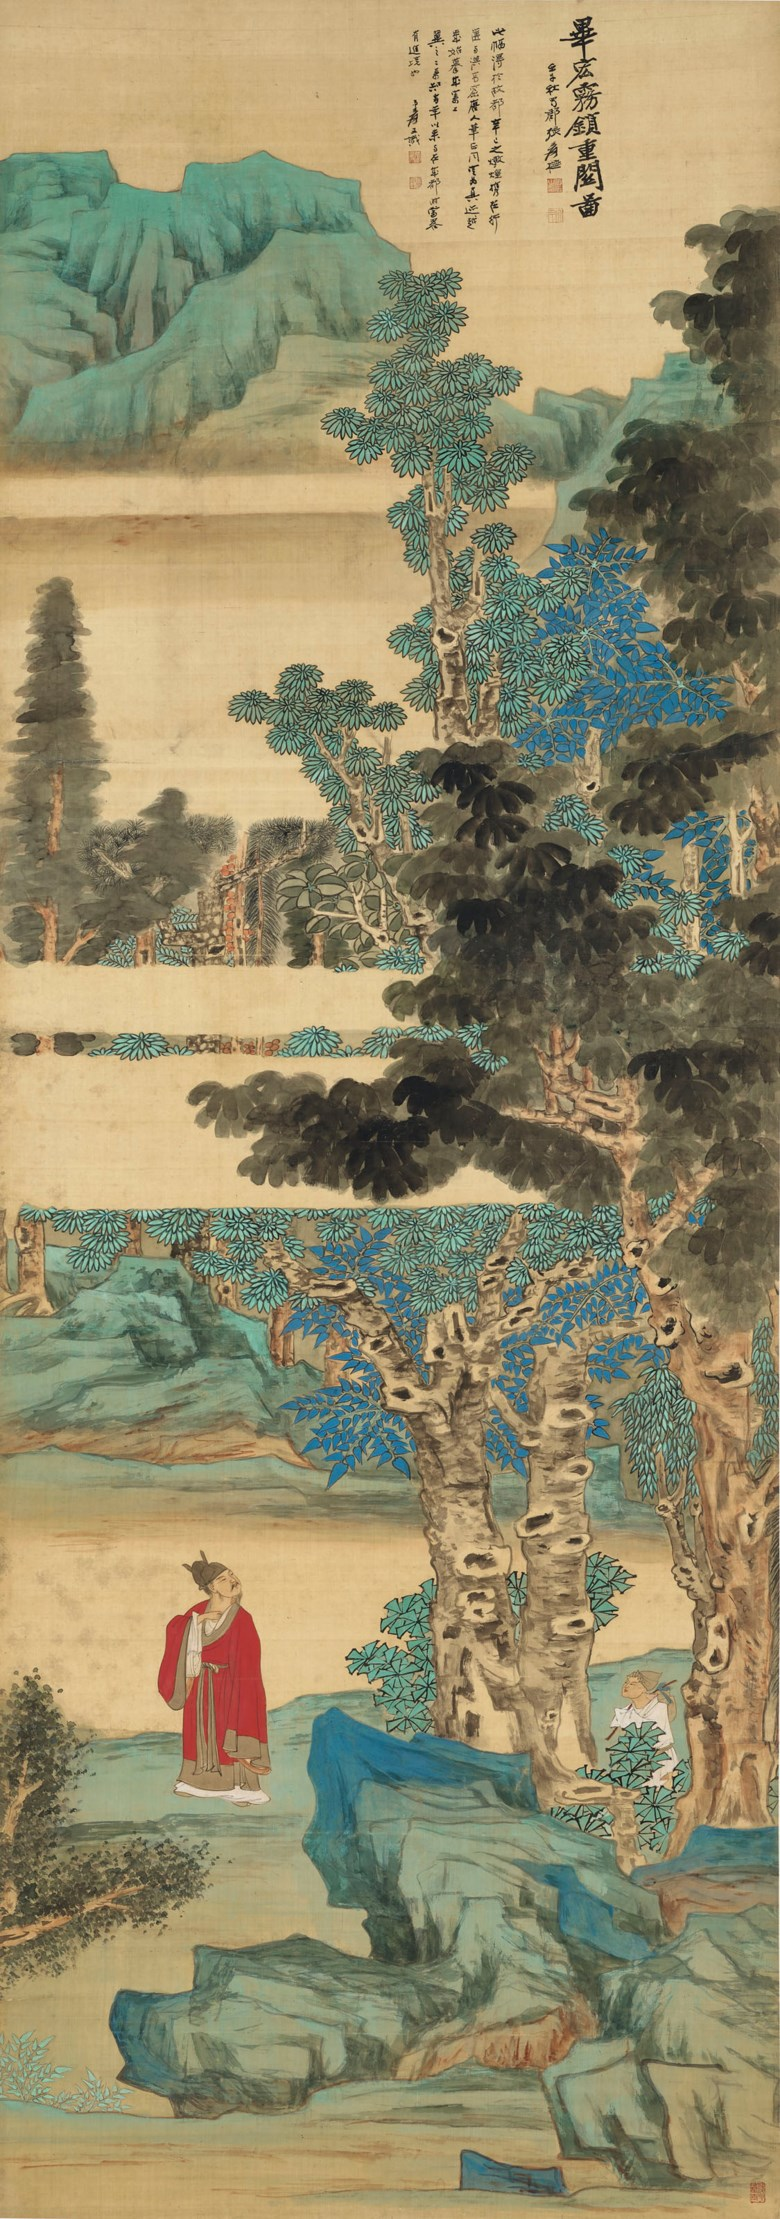 Zhang Daqian (1899-1983), Landscape Hidden in Mist After Bi Hong. Hanging scroll, ink and colour on silk. 213 x 75 cm. (83 78 x 29 12 in.). Estimate HK$18,000,000 - 28,000,000. Offered in Fine Chinese Modern and Contemporary Ink Paintings on 27 May 2021 at Christie's in Hong Kong